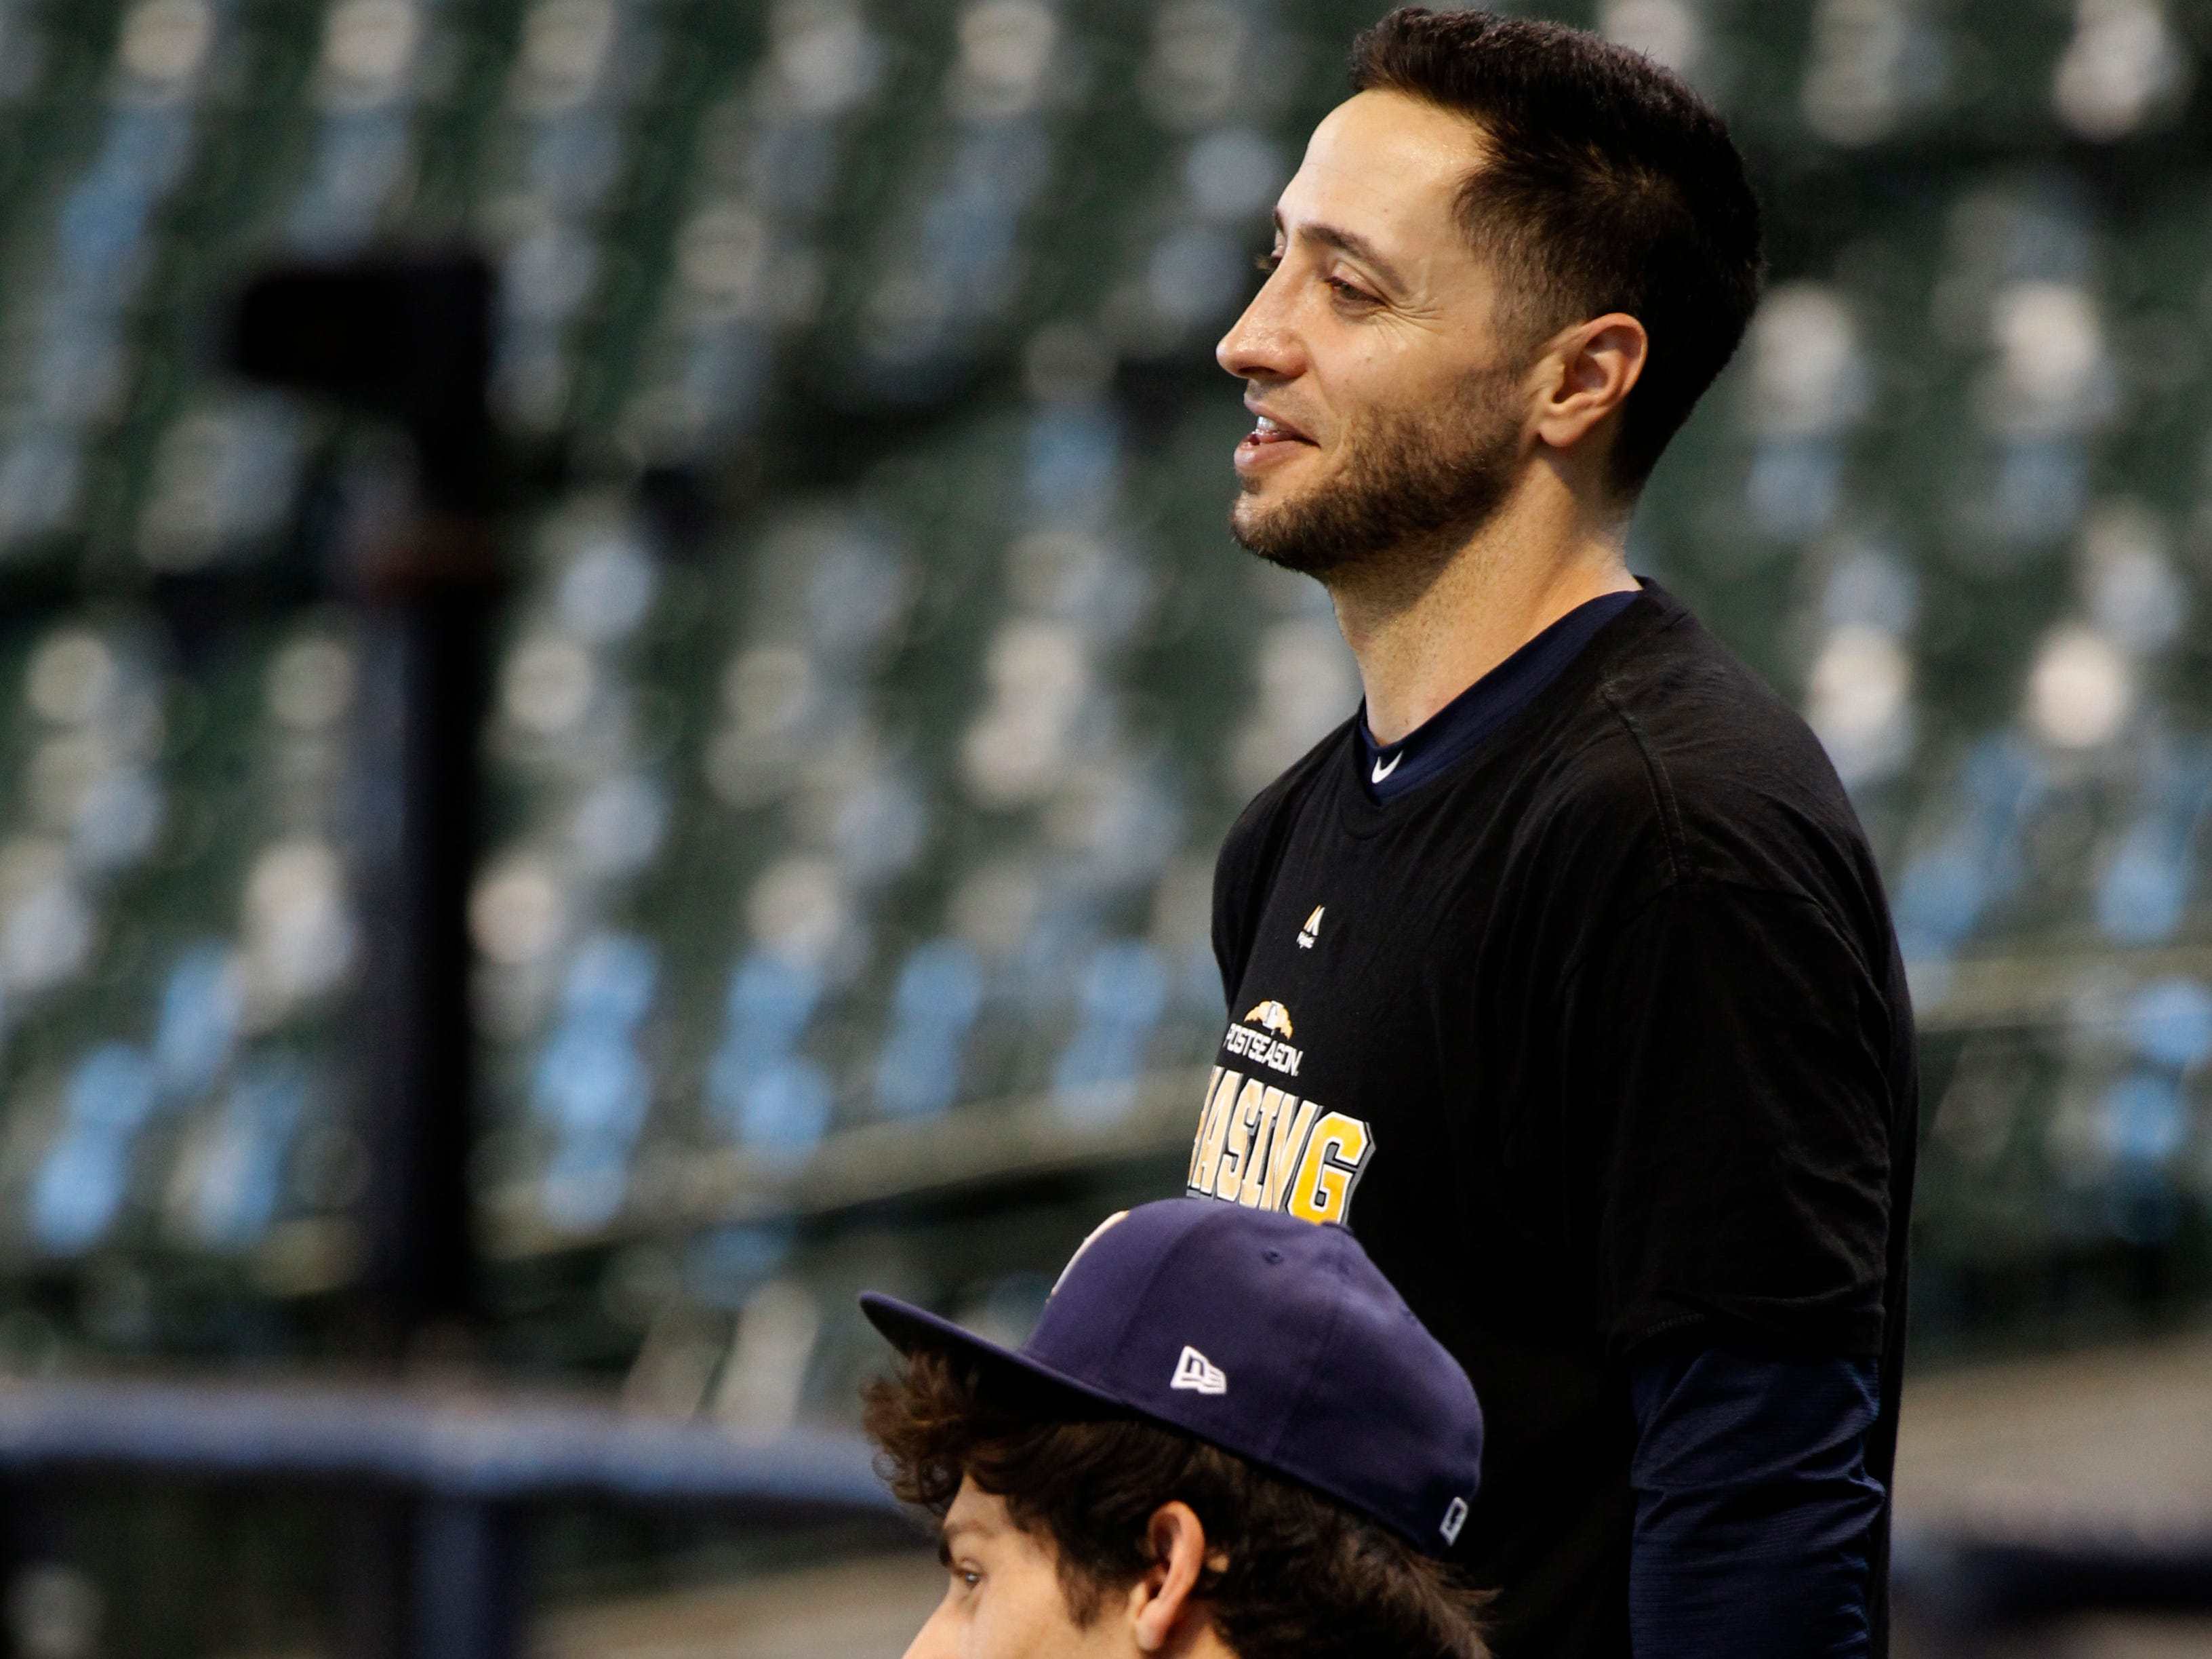 Ryan Braun (standing) and Christian Yelich wait their turn during batting practice on Wednesday at Miller Park.